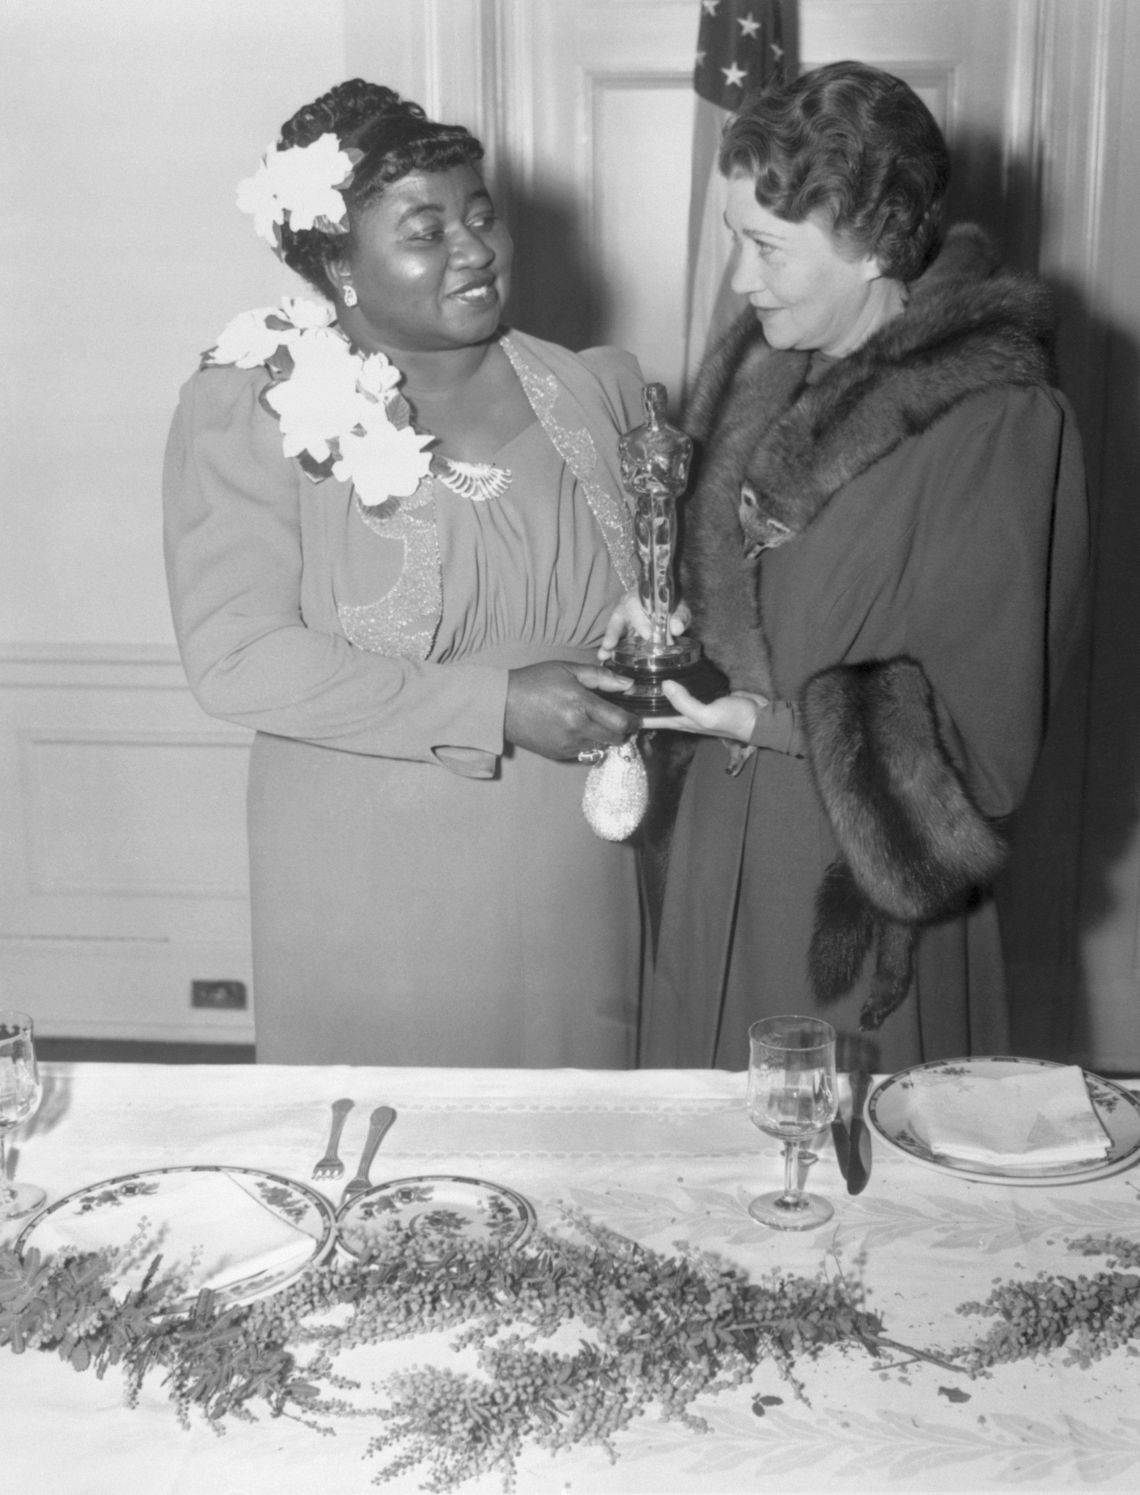 Gone With The Wind actress Hattie McDaniel's Best Supporting Actress win at the 12th Academy Awards was a particularly important one, as she became the first African-American to take home an Oscar for her role as Mammy, the head slave at the O'Hara family's plantation.While many refer back to this as a progressive moment, it should be noted that Hattie's win came at a time when segregation was still in place. This meant she was not able to sit with her Gone With The Wind co-stars during the ceremony, with film producerDavid O. Selznick having to call in a favour for her to be allowed to attend at all.Precious actress Mo'nique paid homage to Hattie when she picked up the same award 70 years later.